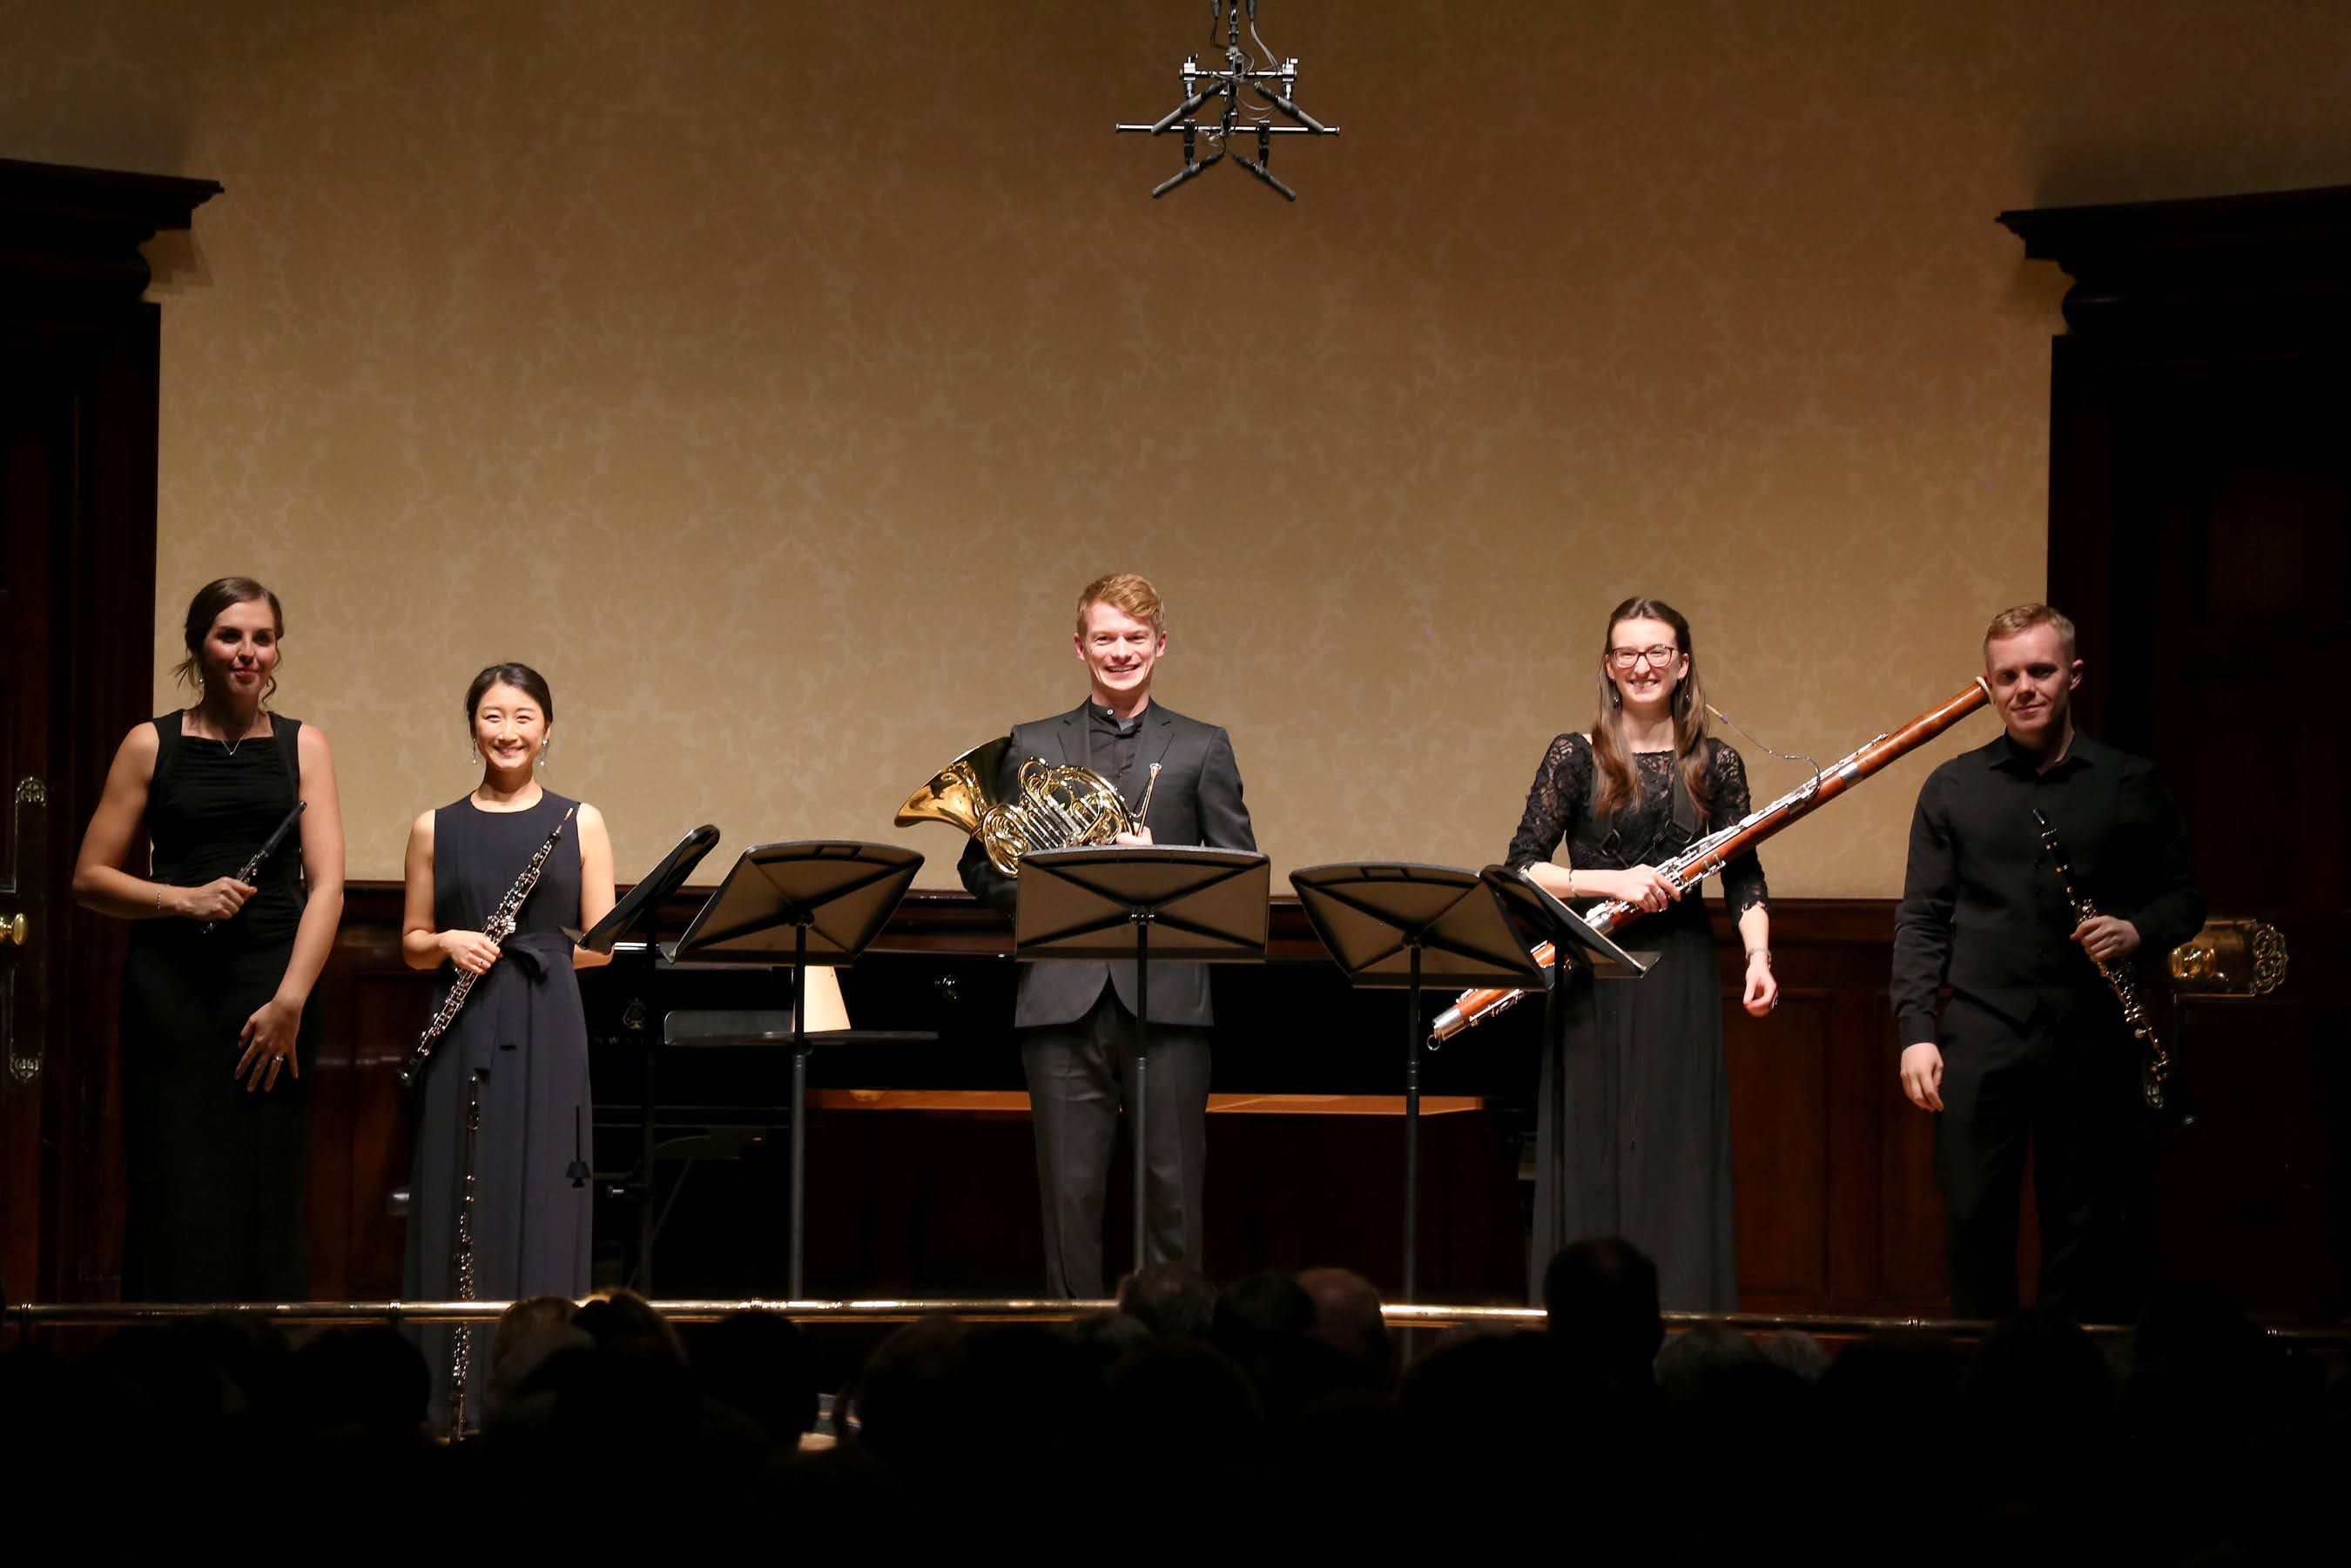 Magnard Ensemble at Wigmore Hall (Photo: Robert Piwko)